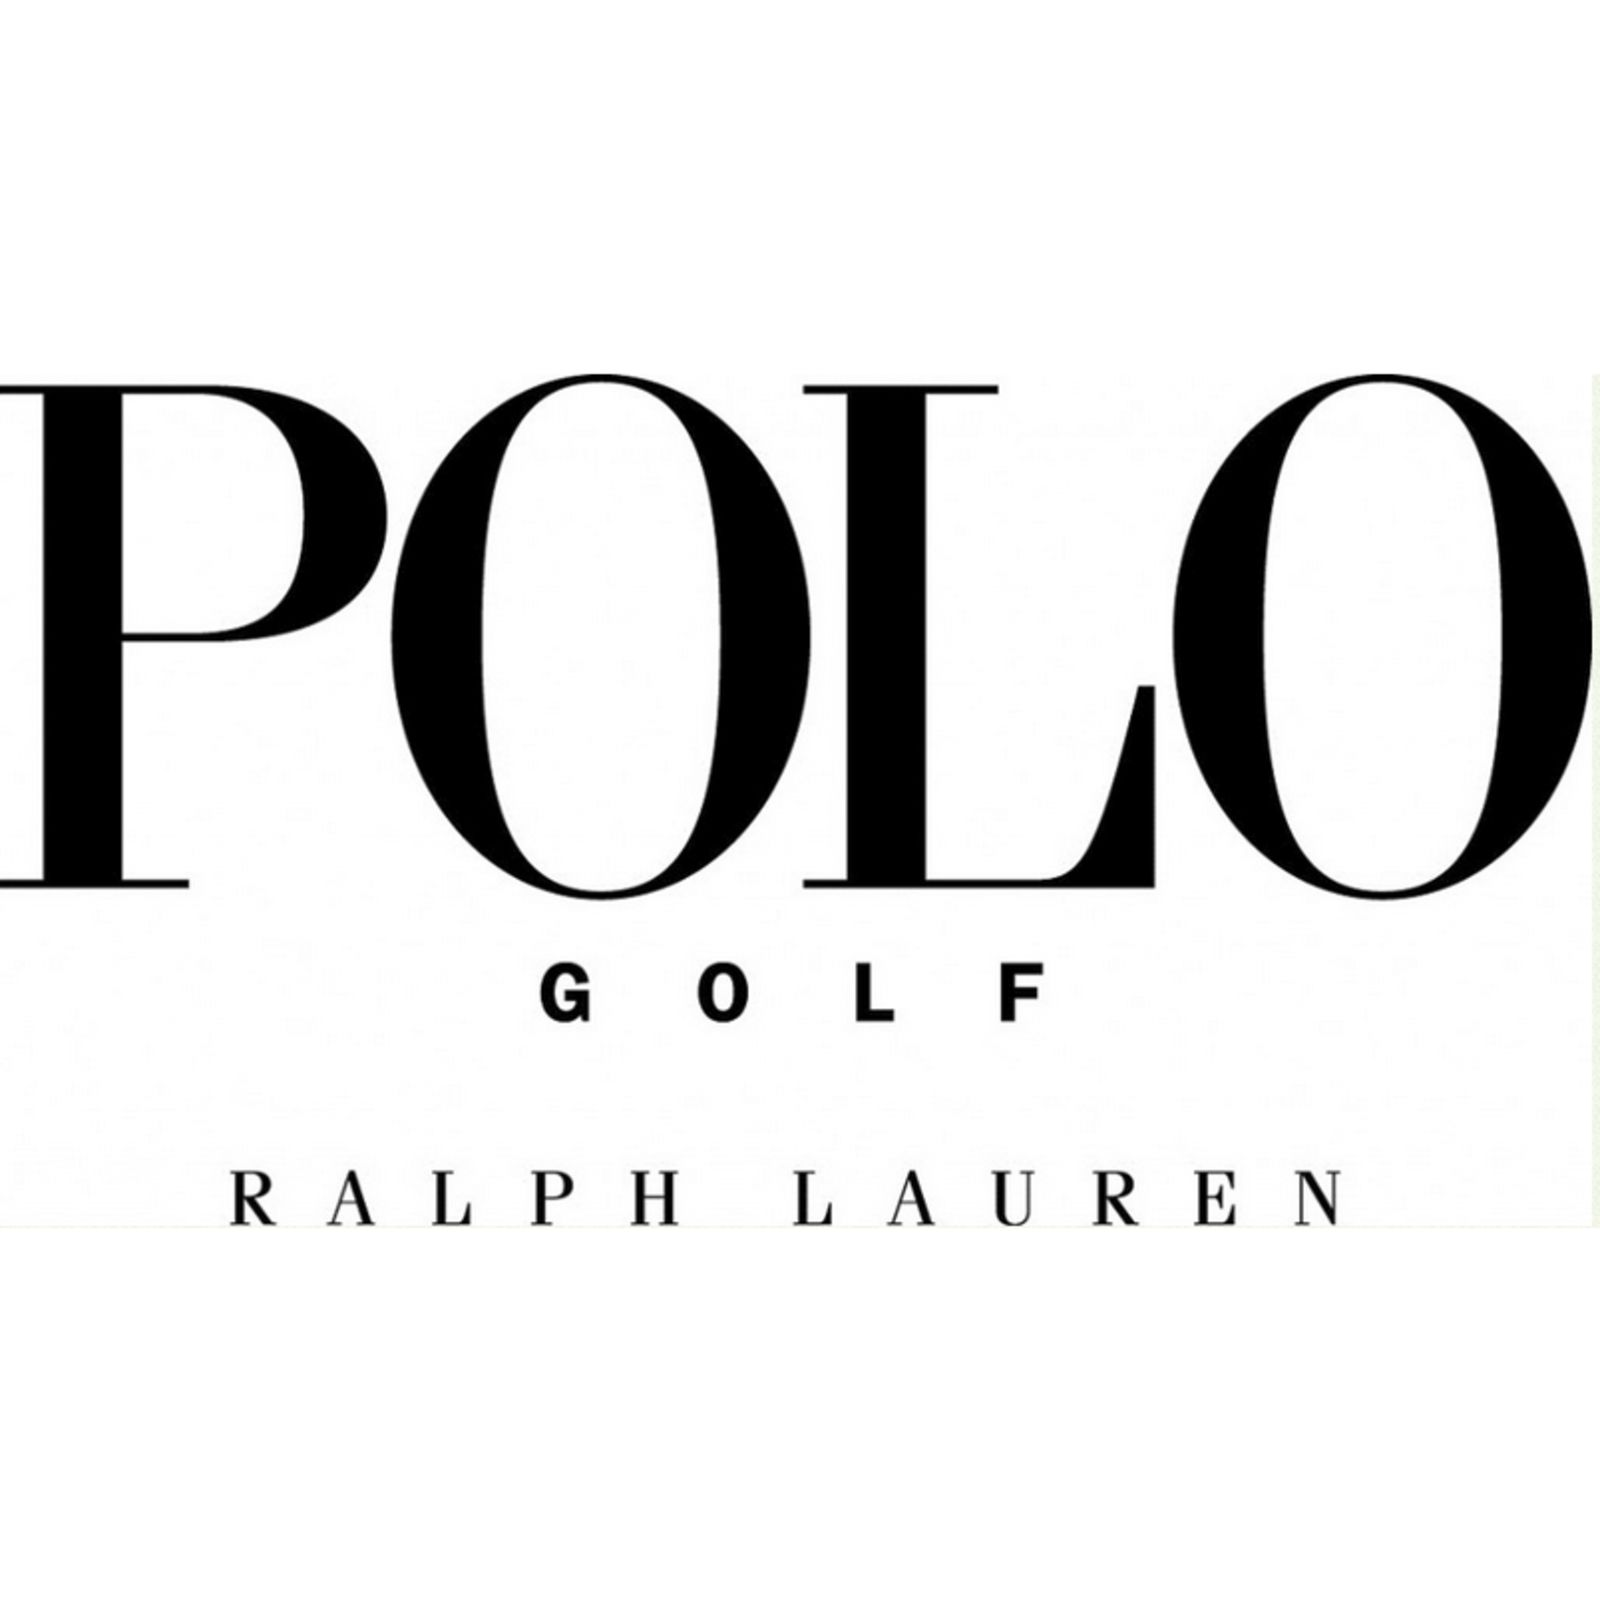 POLO RALPH LAUREN GOLF (Изображение 1)